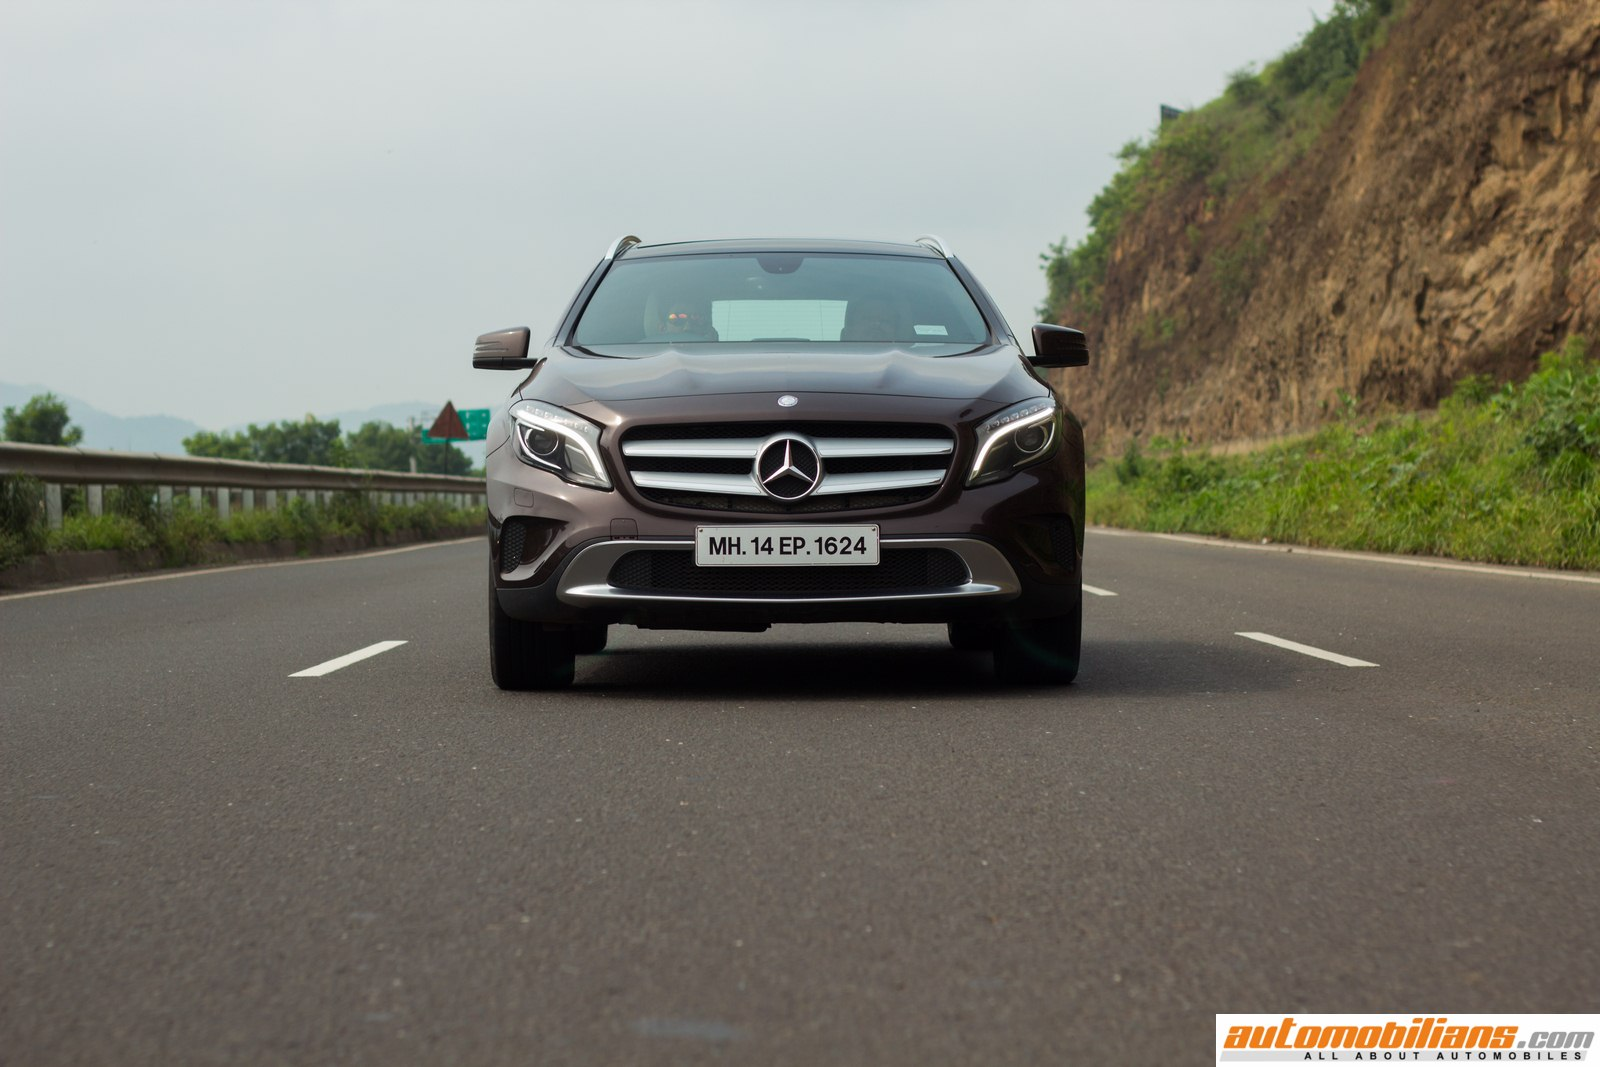 Mercedes Roadside Assistance >> 2015 Mercedes-Benz GLA 200 - Test Drive Review, GLA Class, Crossover, Mercedes GLA 200, Road ...